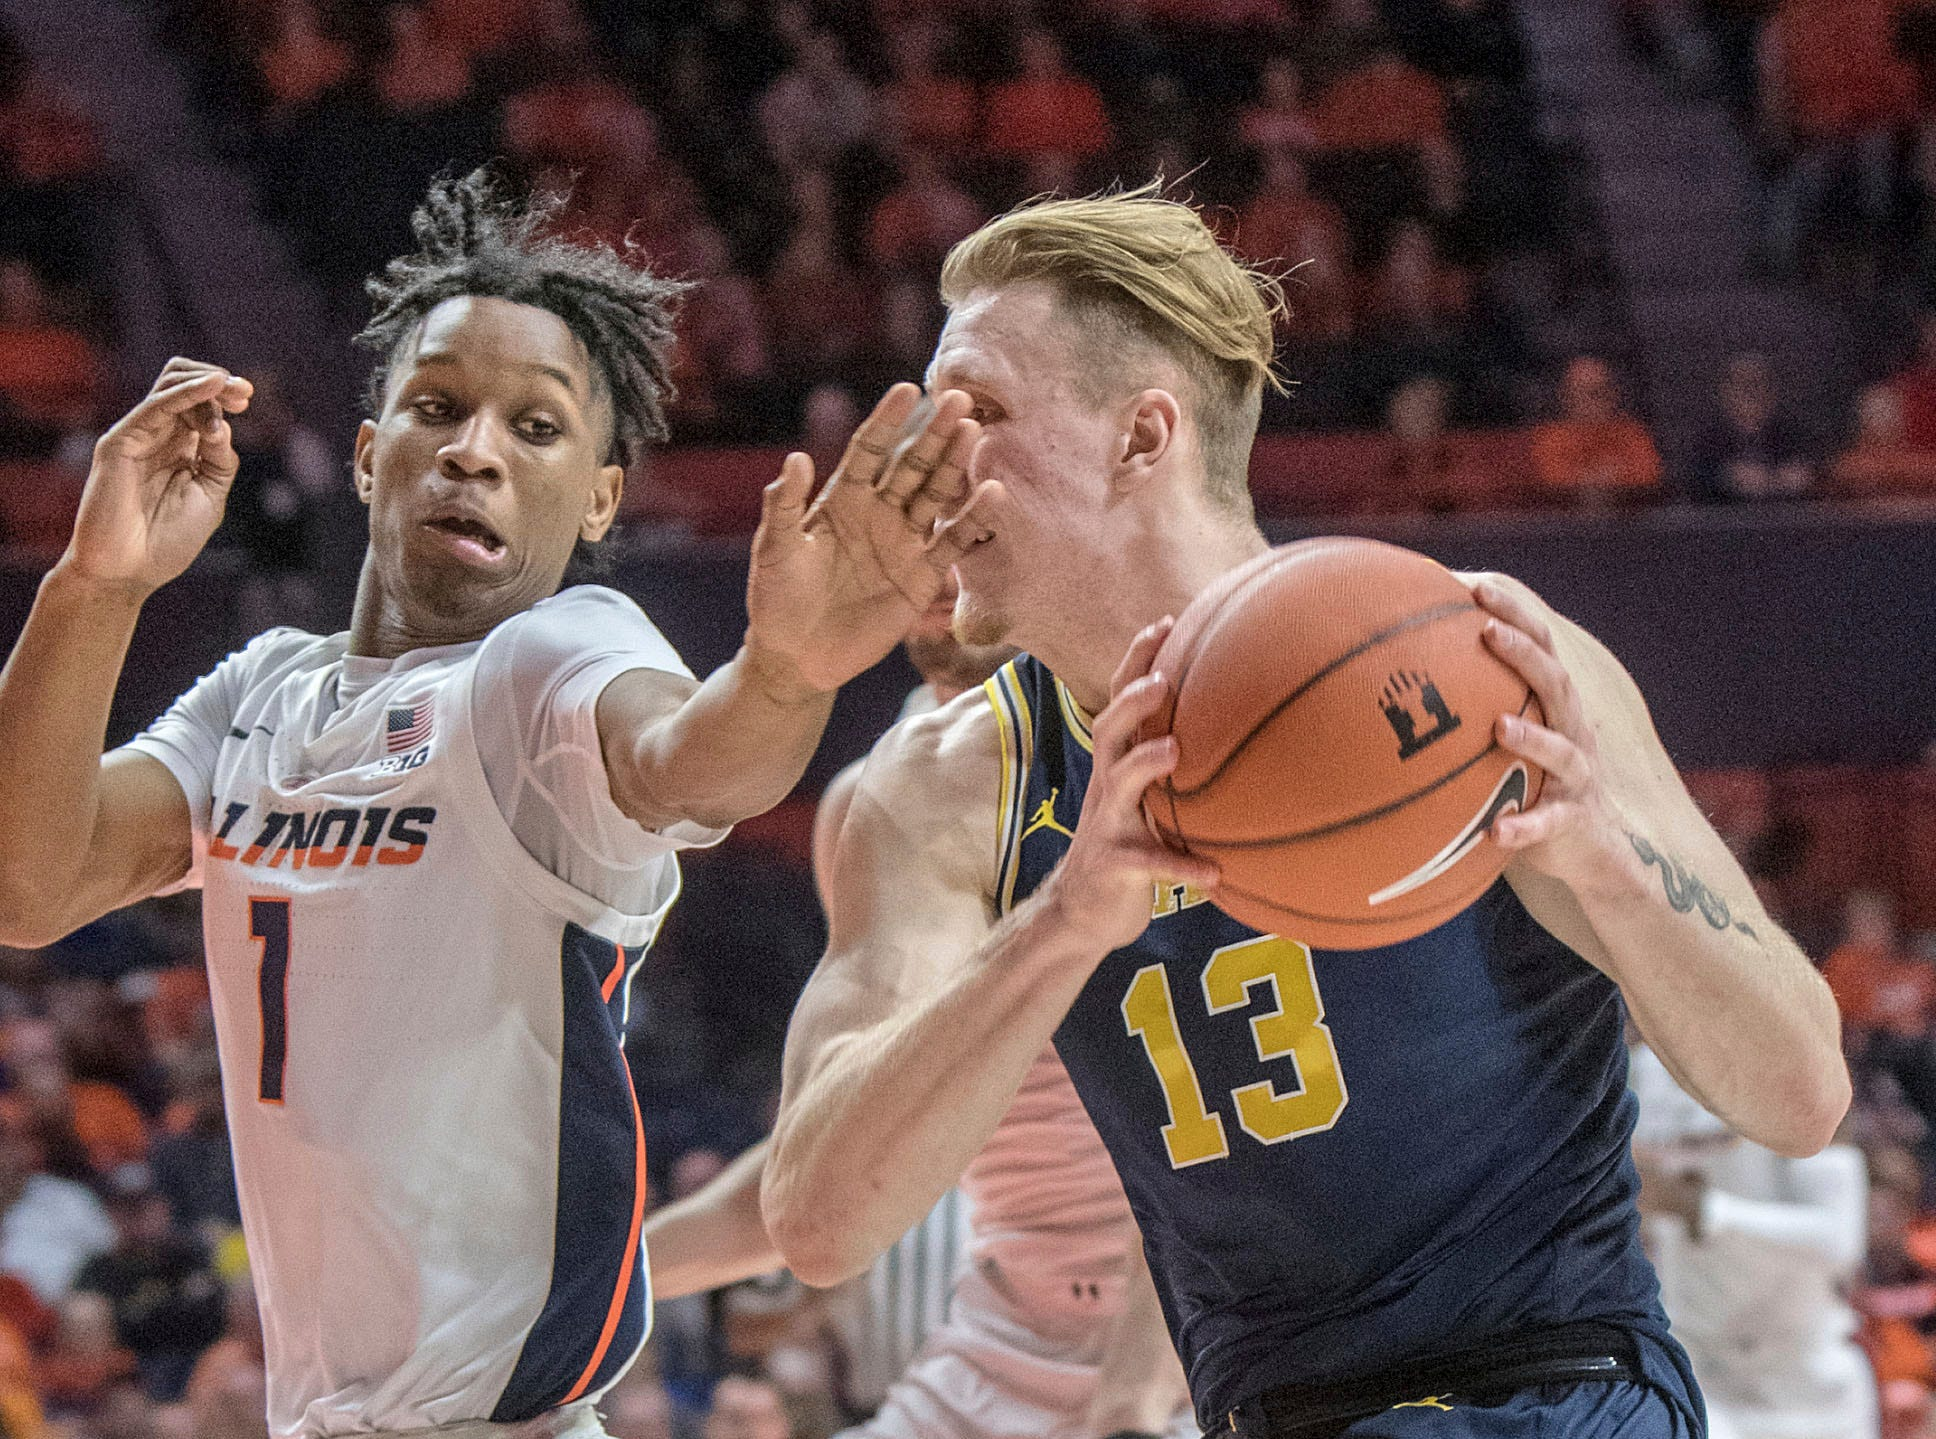 Illinois guard Trent Frazier (1) tries to slow the drive of Michigan forward Ignas Brazdeikis (13) during the second half.